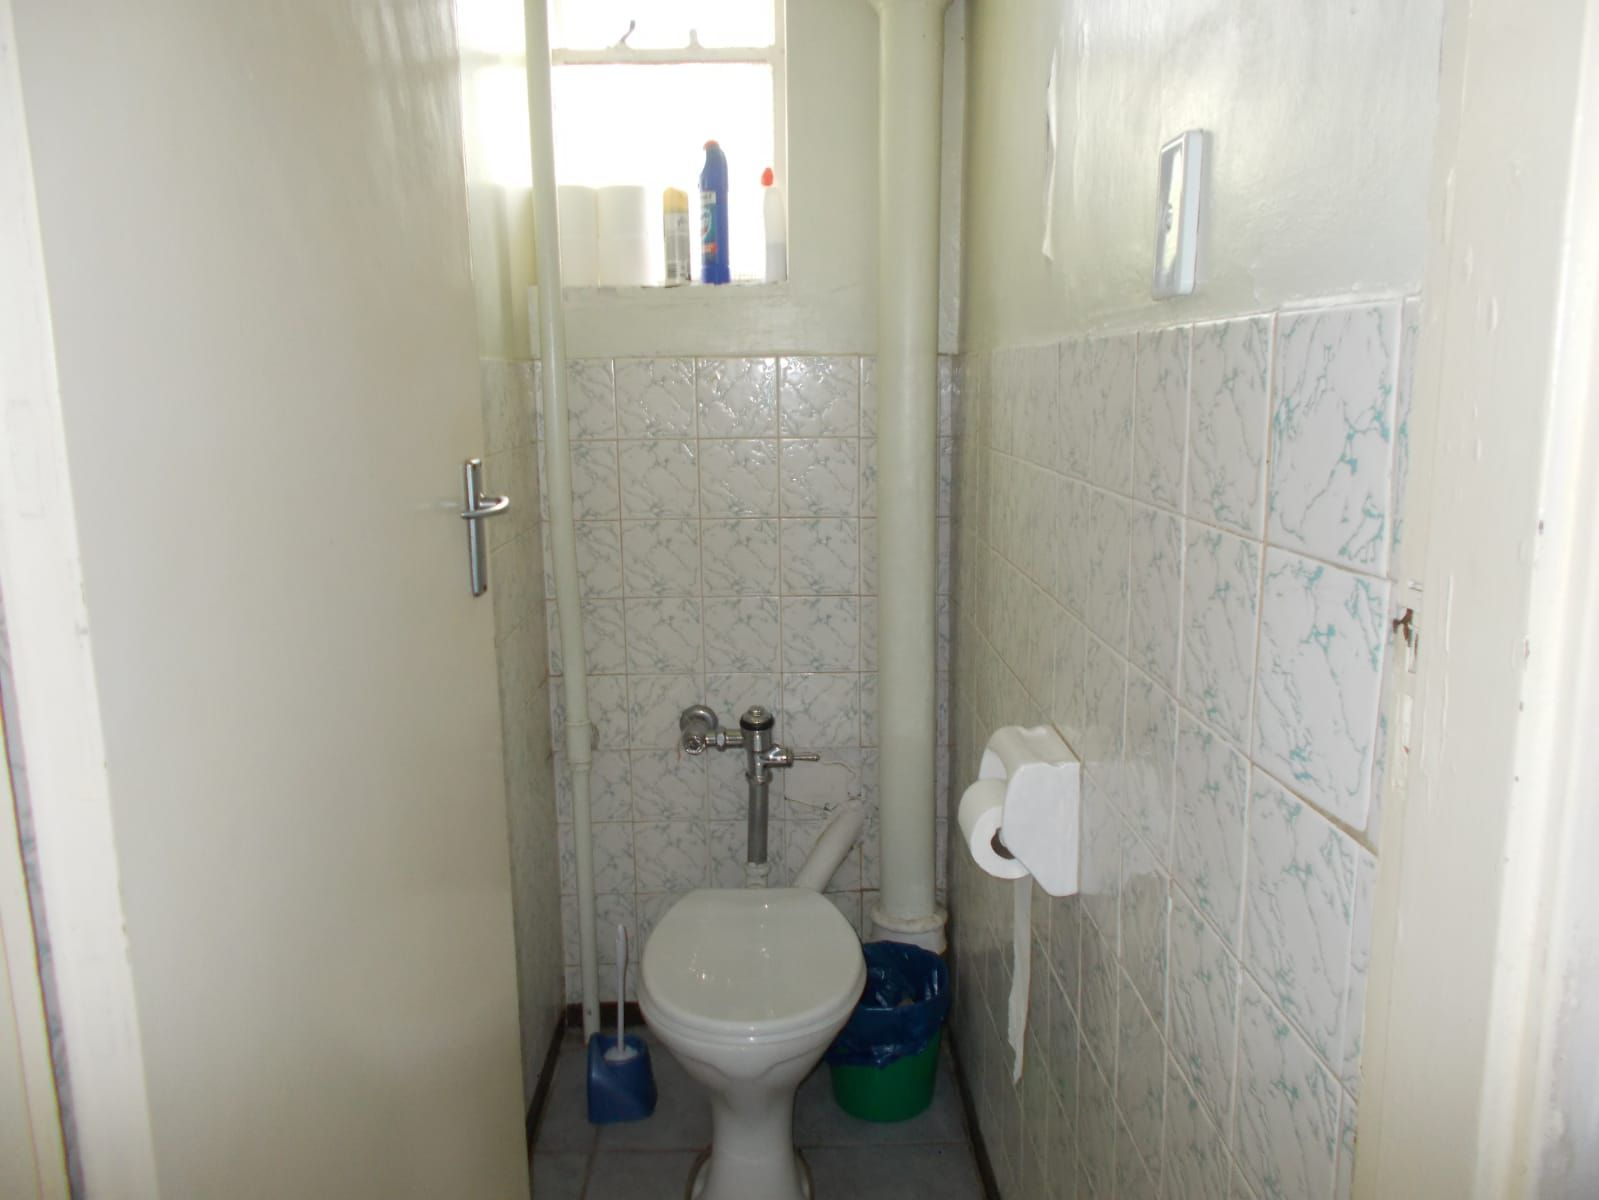 Apartment in Hillbrow - WhatsApp Image 2021-01-12 at 13.03.59 (1).jpeg